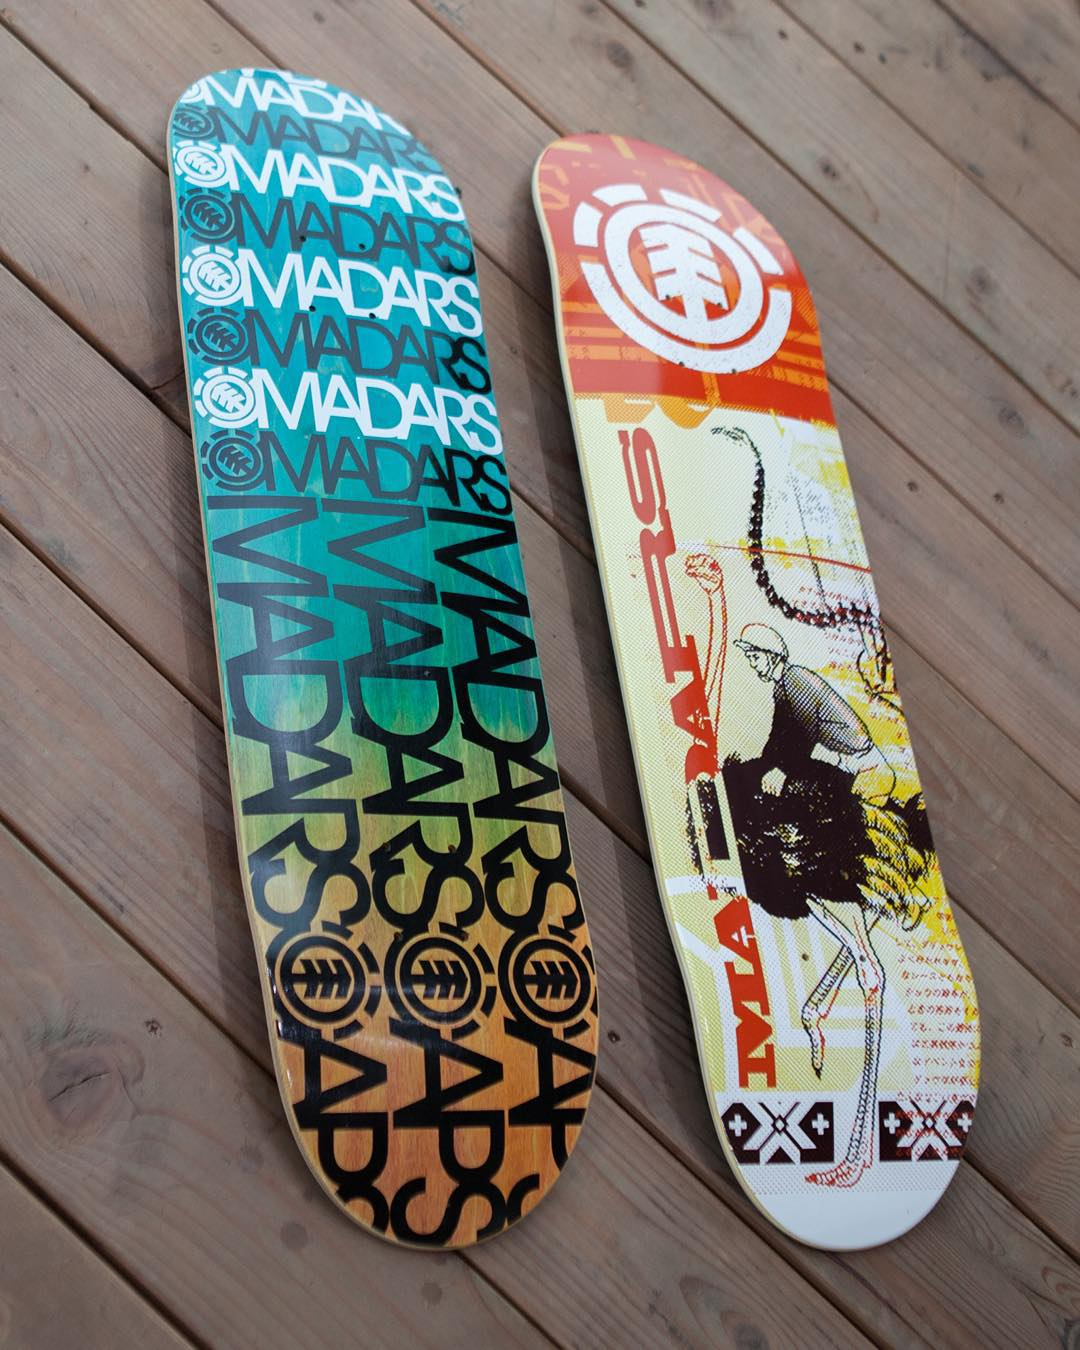 "couple fresh @madarsapse boards that recently hit the shelves >>> both 'name brand' and 'overprint' are 8.25"" featherlight boards >>> #madarsapse #elementskateboards #elementteamtuesday"